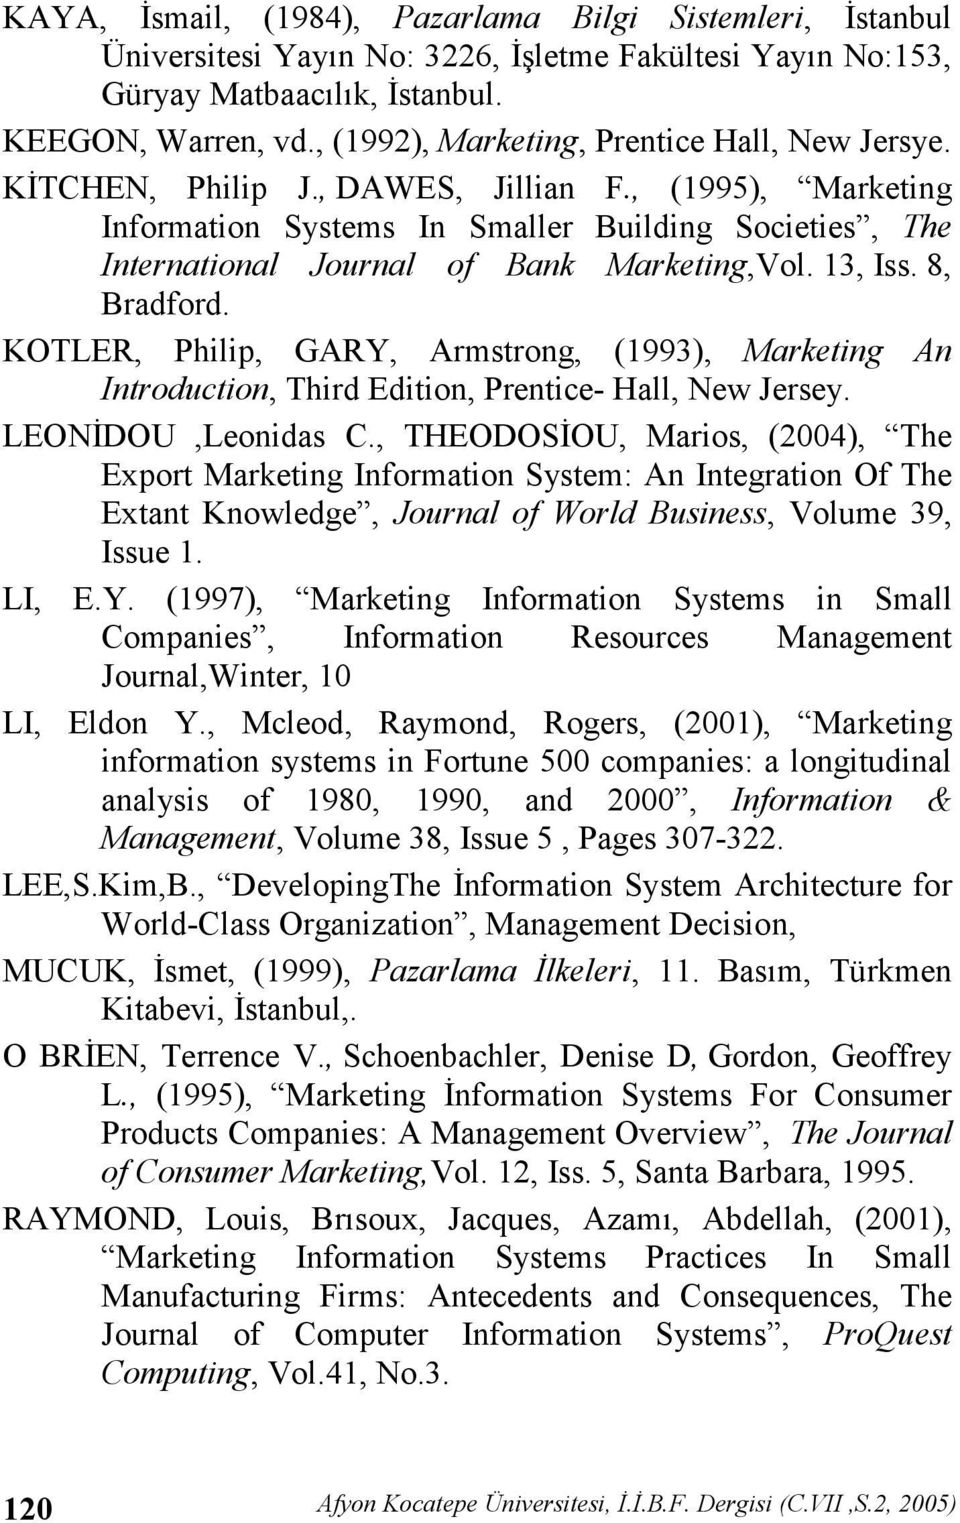 , (1995), Marketing Information Systems In Smaller Building Societies, The International Journal of Bank Marketing,Vol. 13, Iss. 8, Bradford.